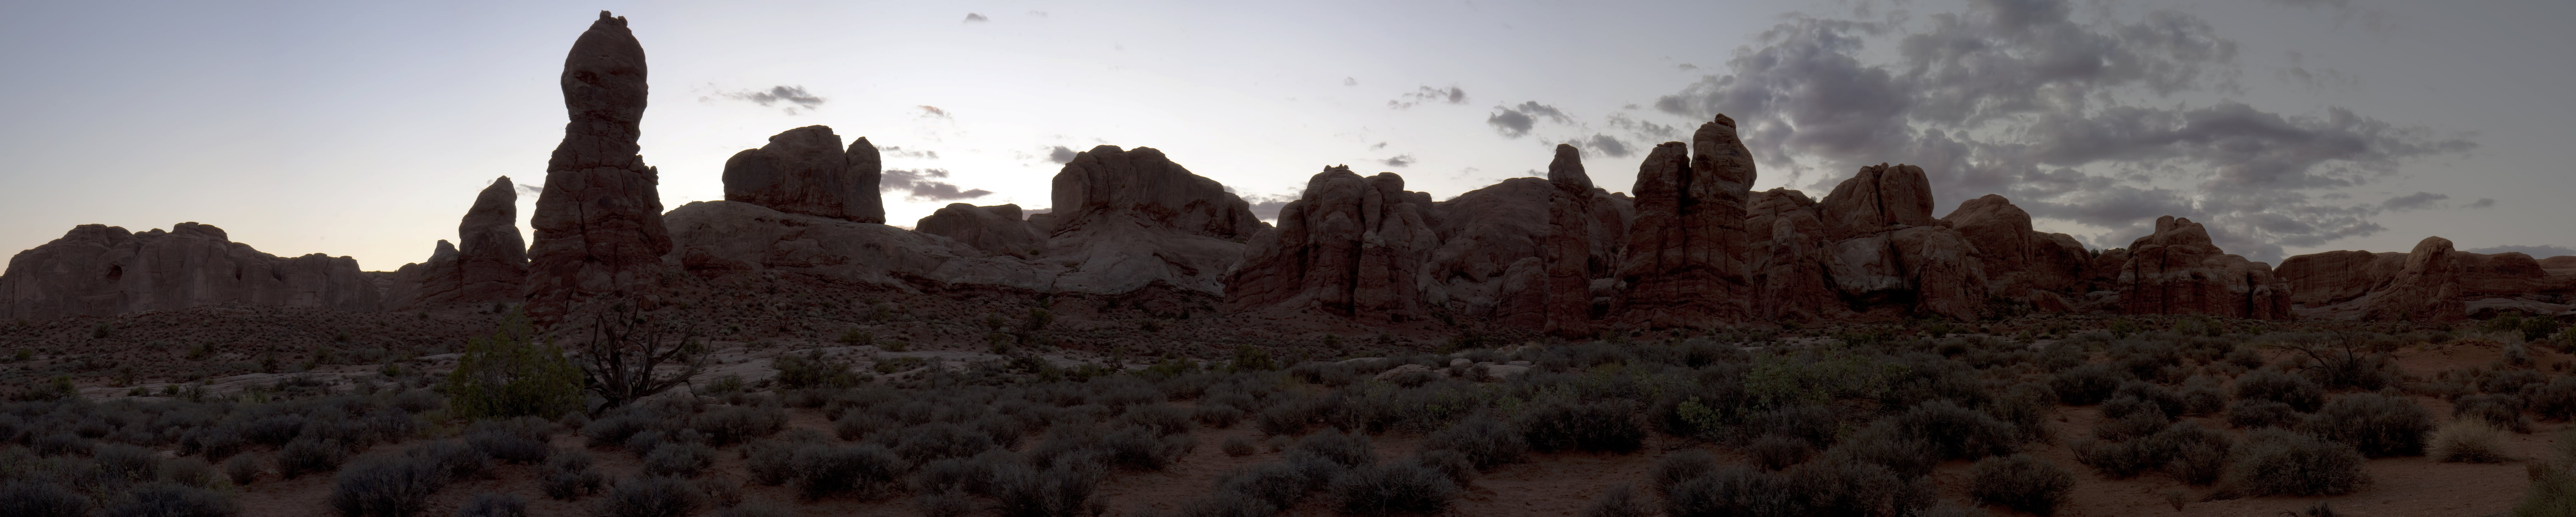 Panoramic Photo Of Rock Formations